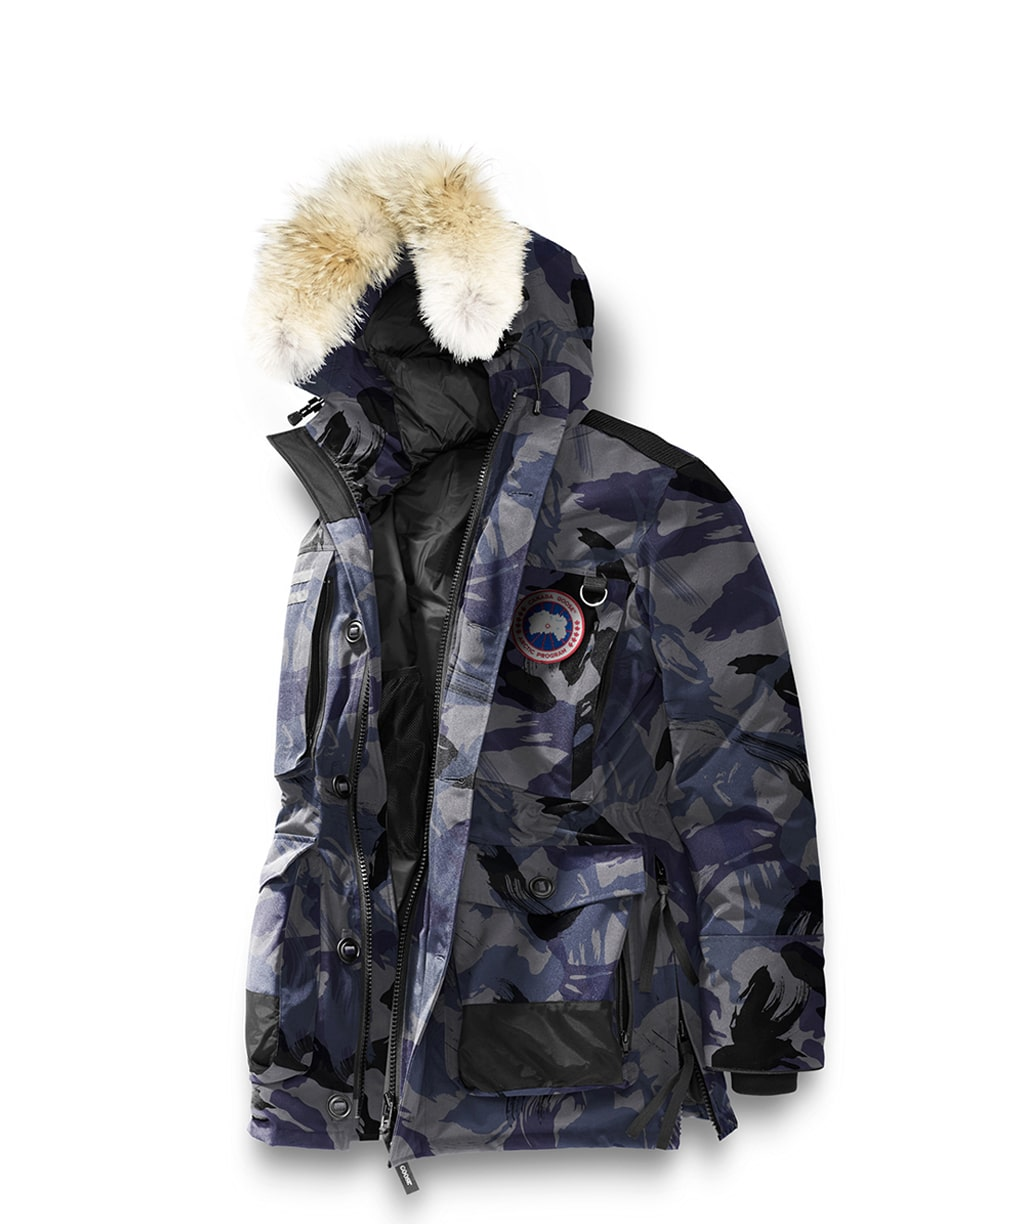 MACCULLOUCH PARKA